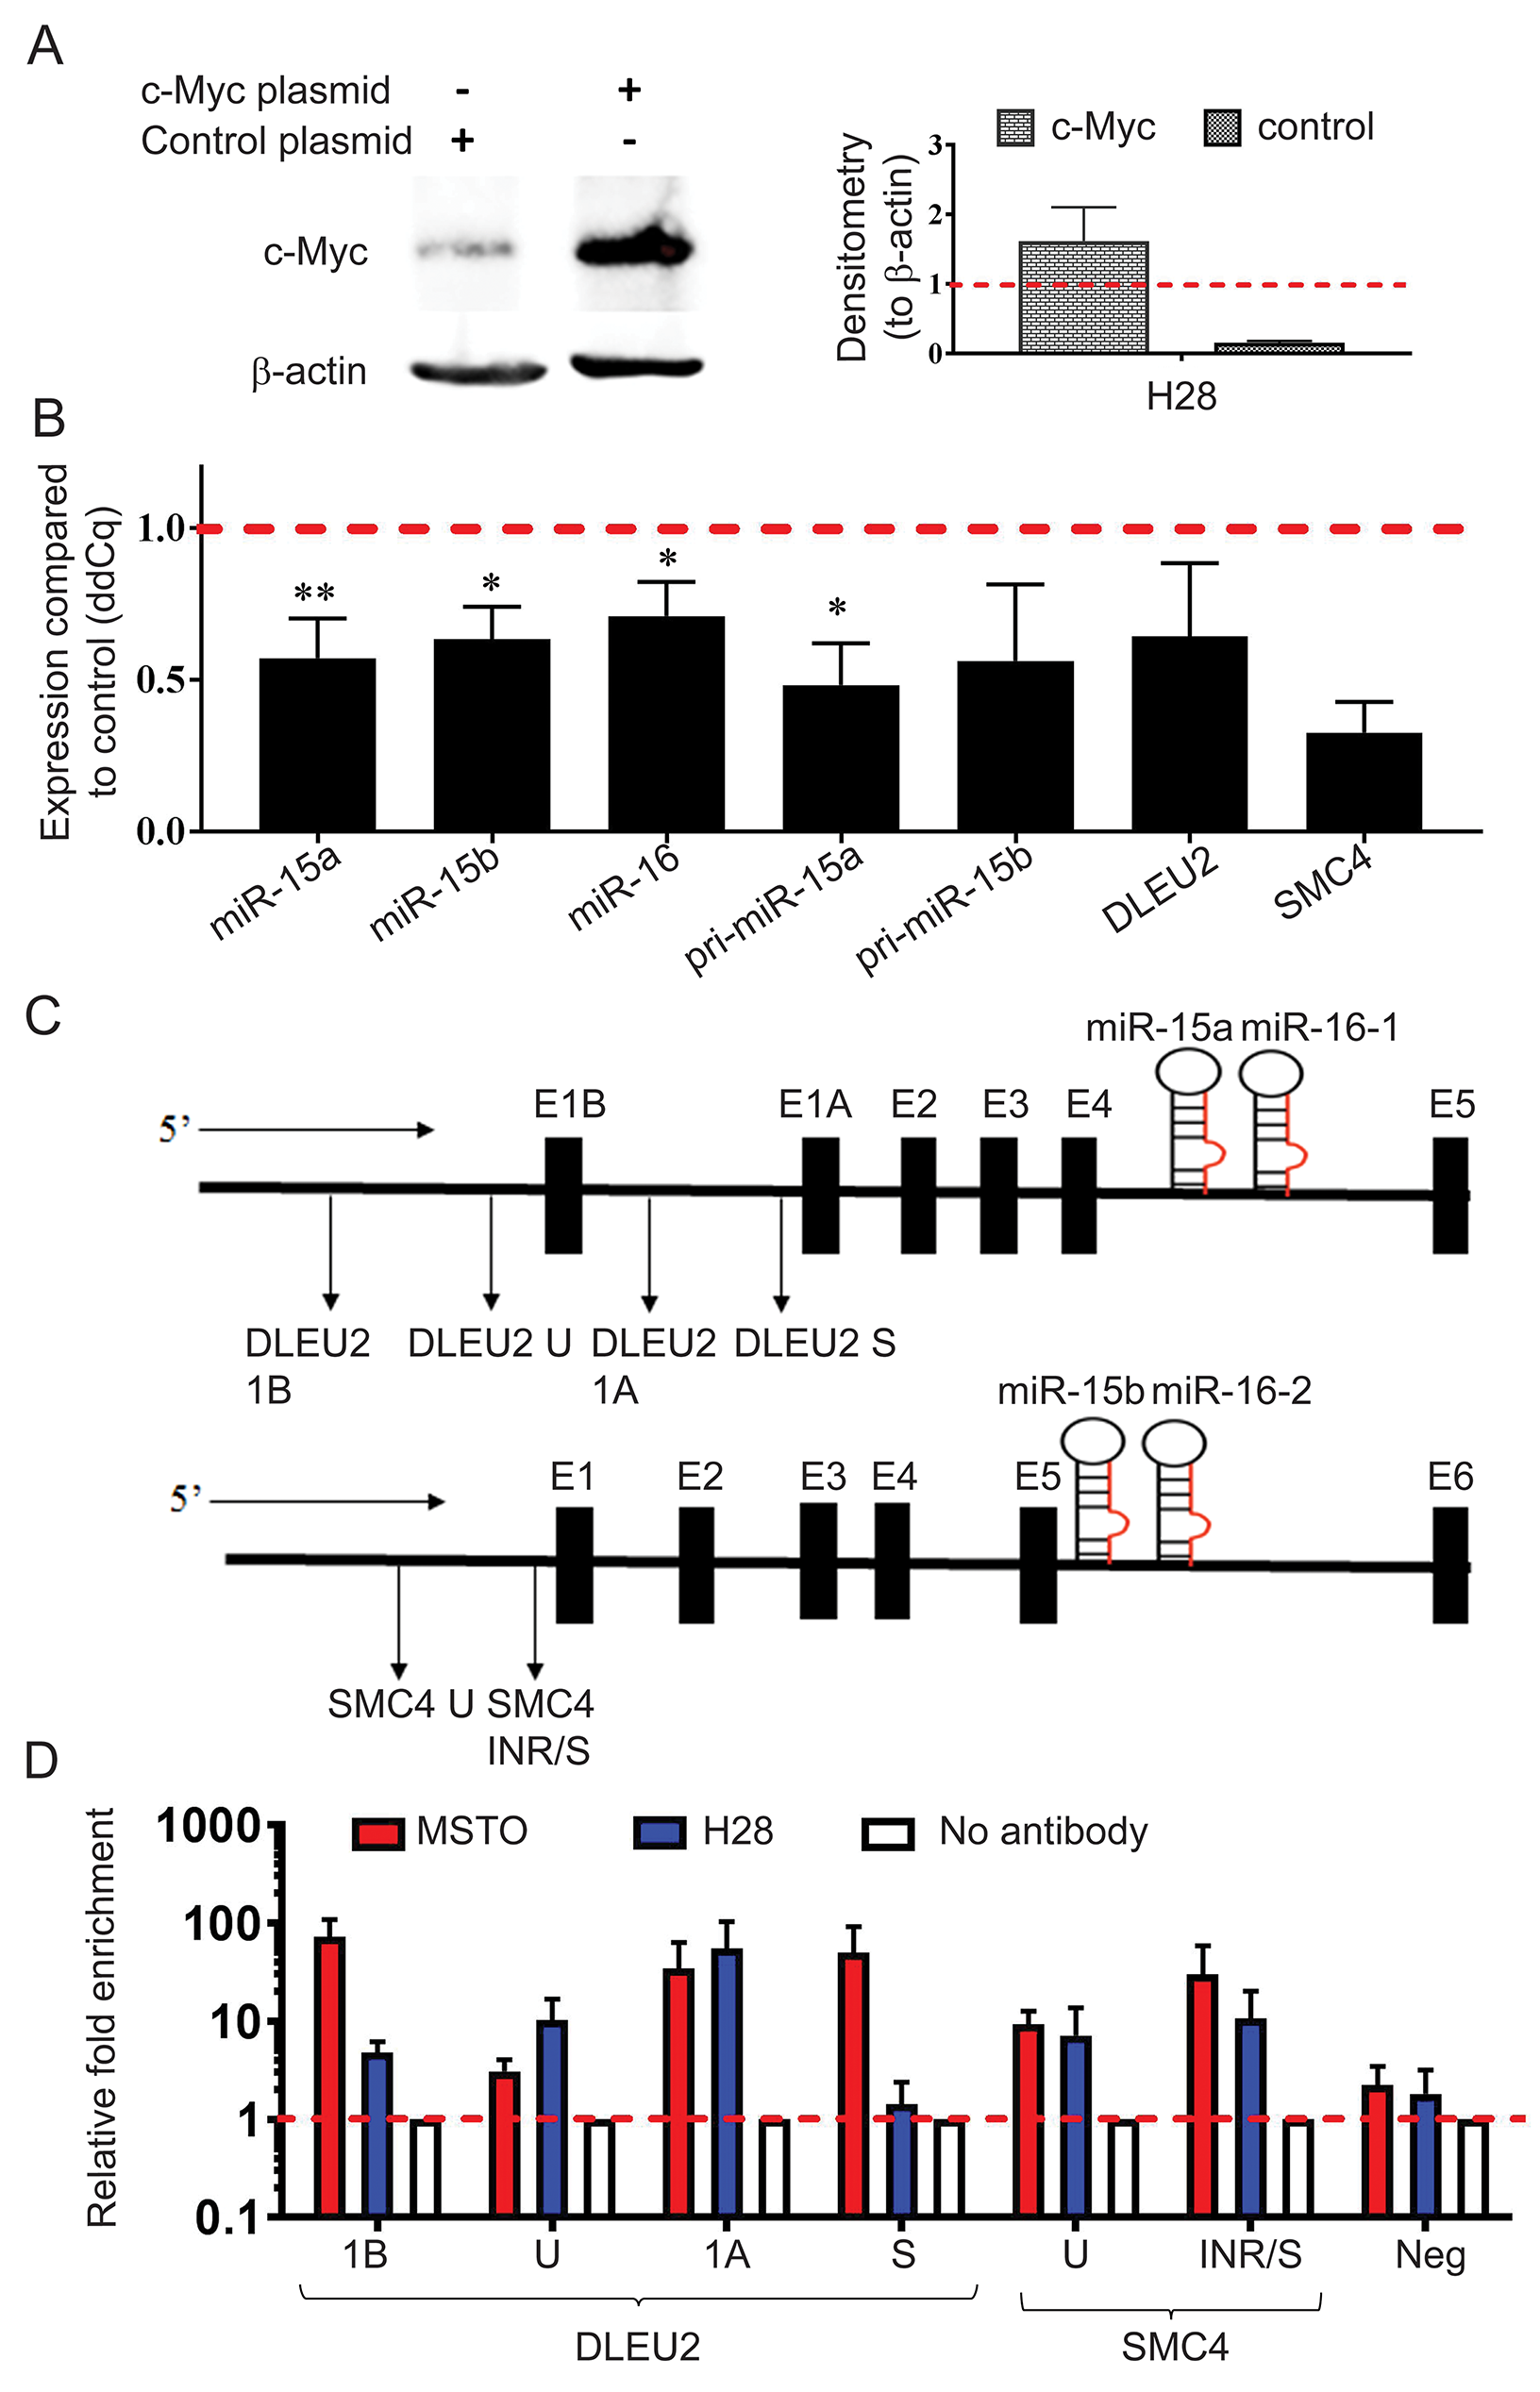 MYC overexpression causes downregulation of miR-15b/16-2 and miR-15a/16-1 and their host genes via binding to the DLEU2 and SMC4 promoters.